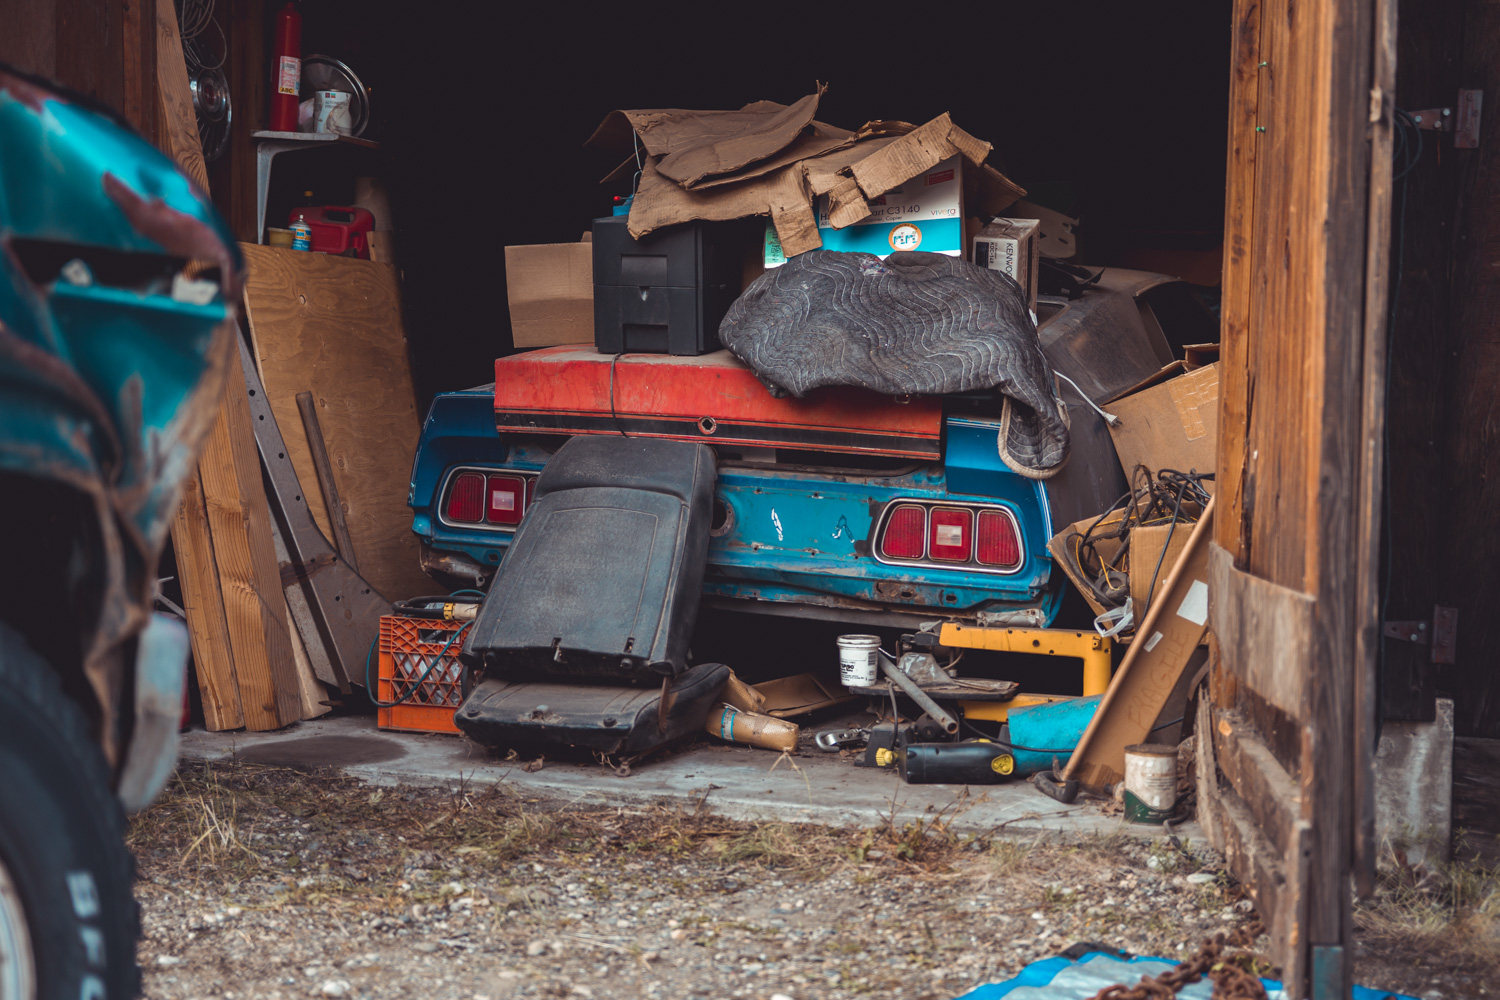 Barn find hunter alaska Mach 1 under pile